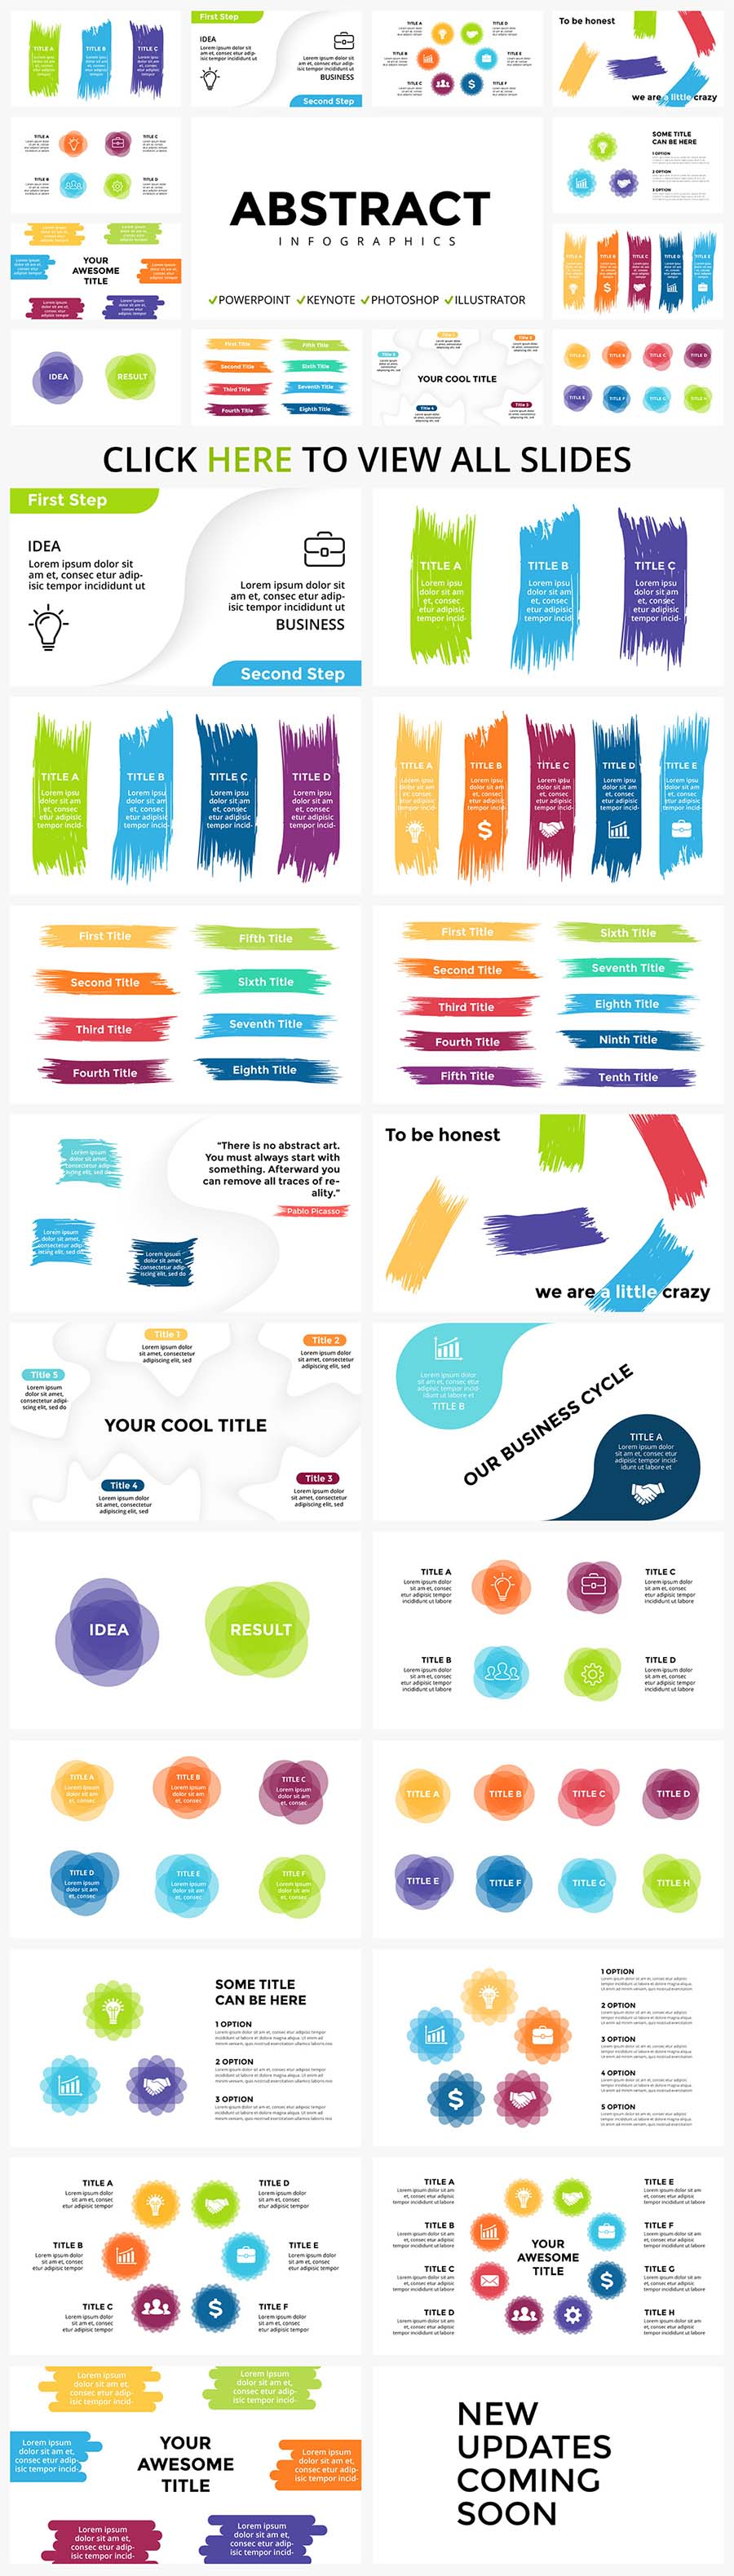 Modern infographics with colorful details and icons. Abstract Infographic Templates.